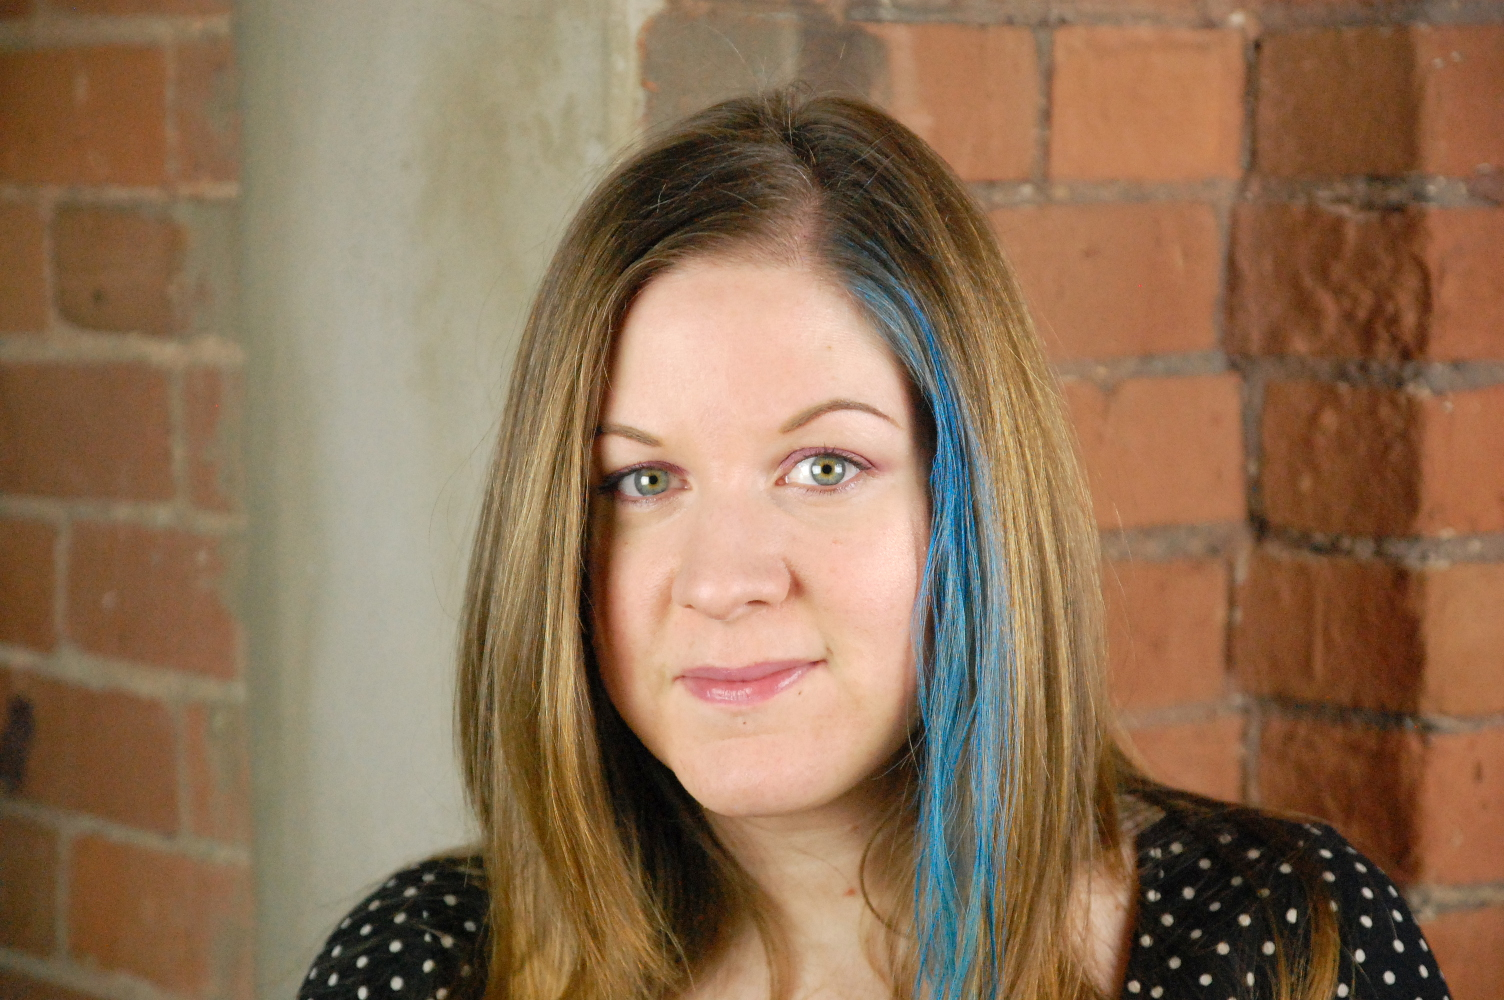 Blue streaks in light brown hair